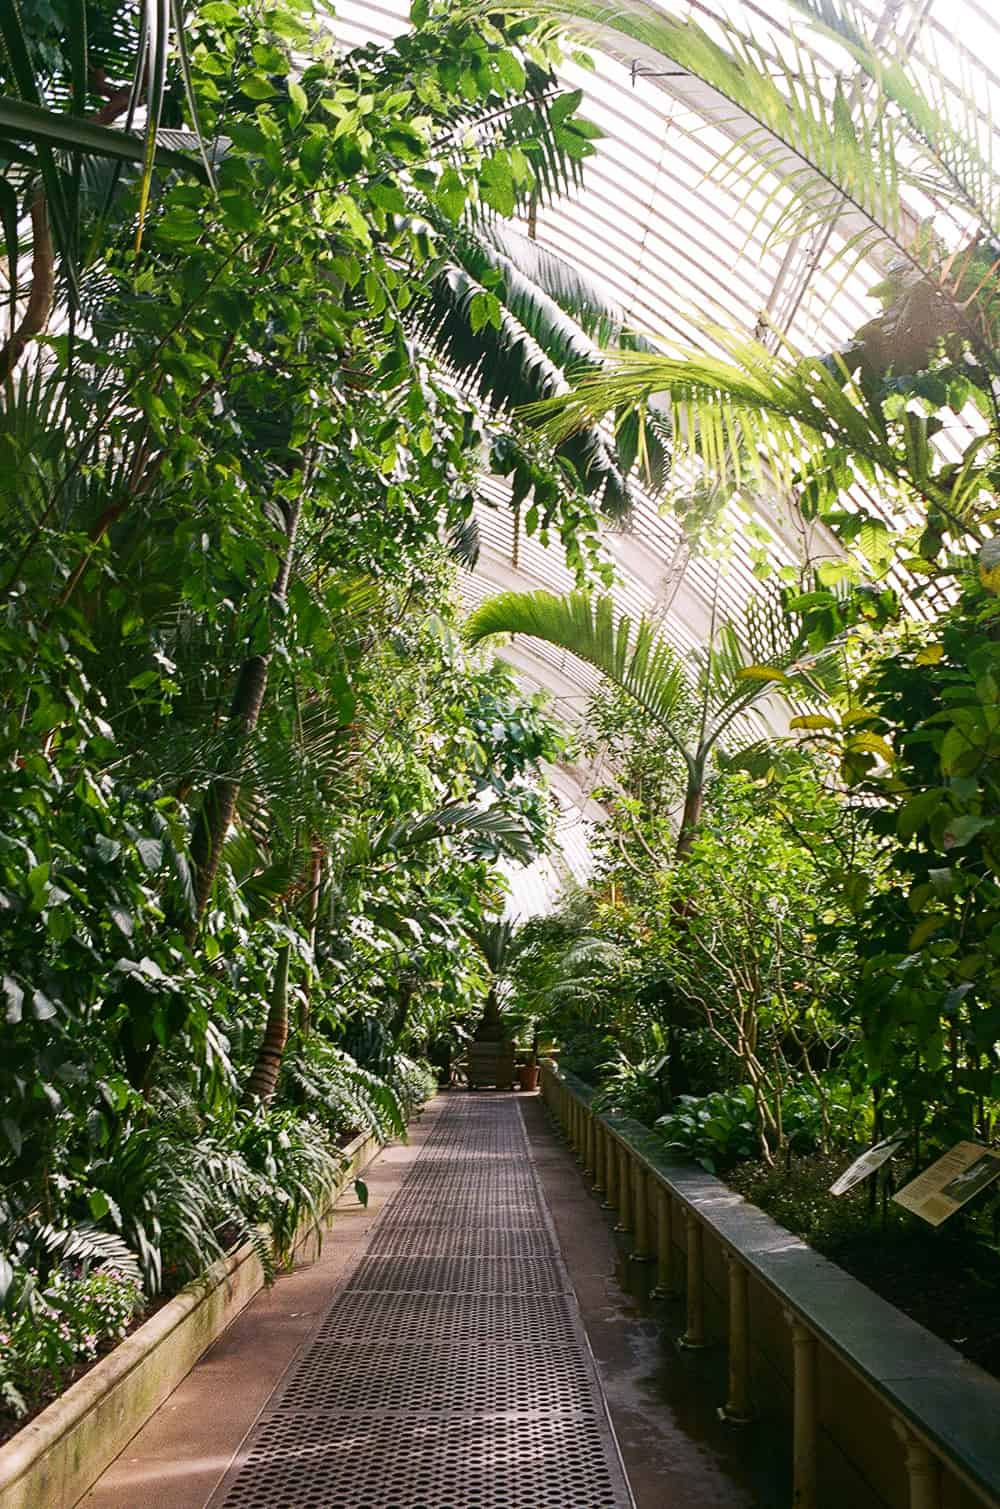 35mm film kew gardens vlog